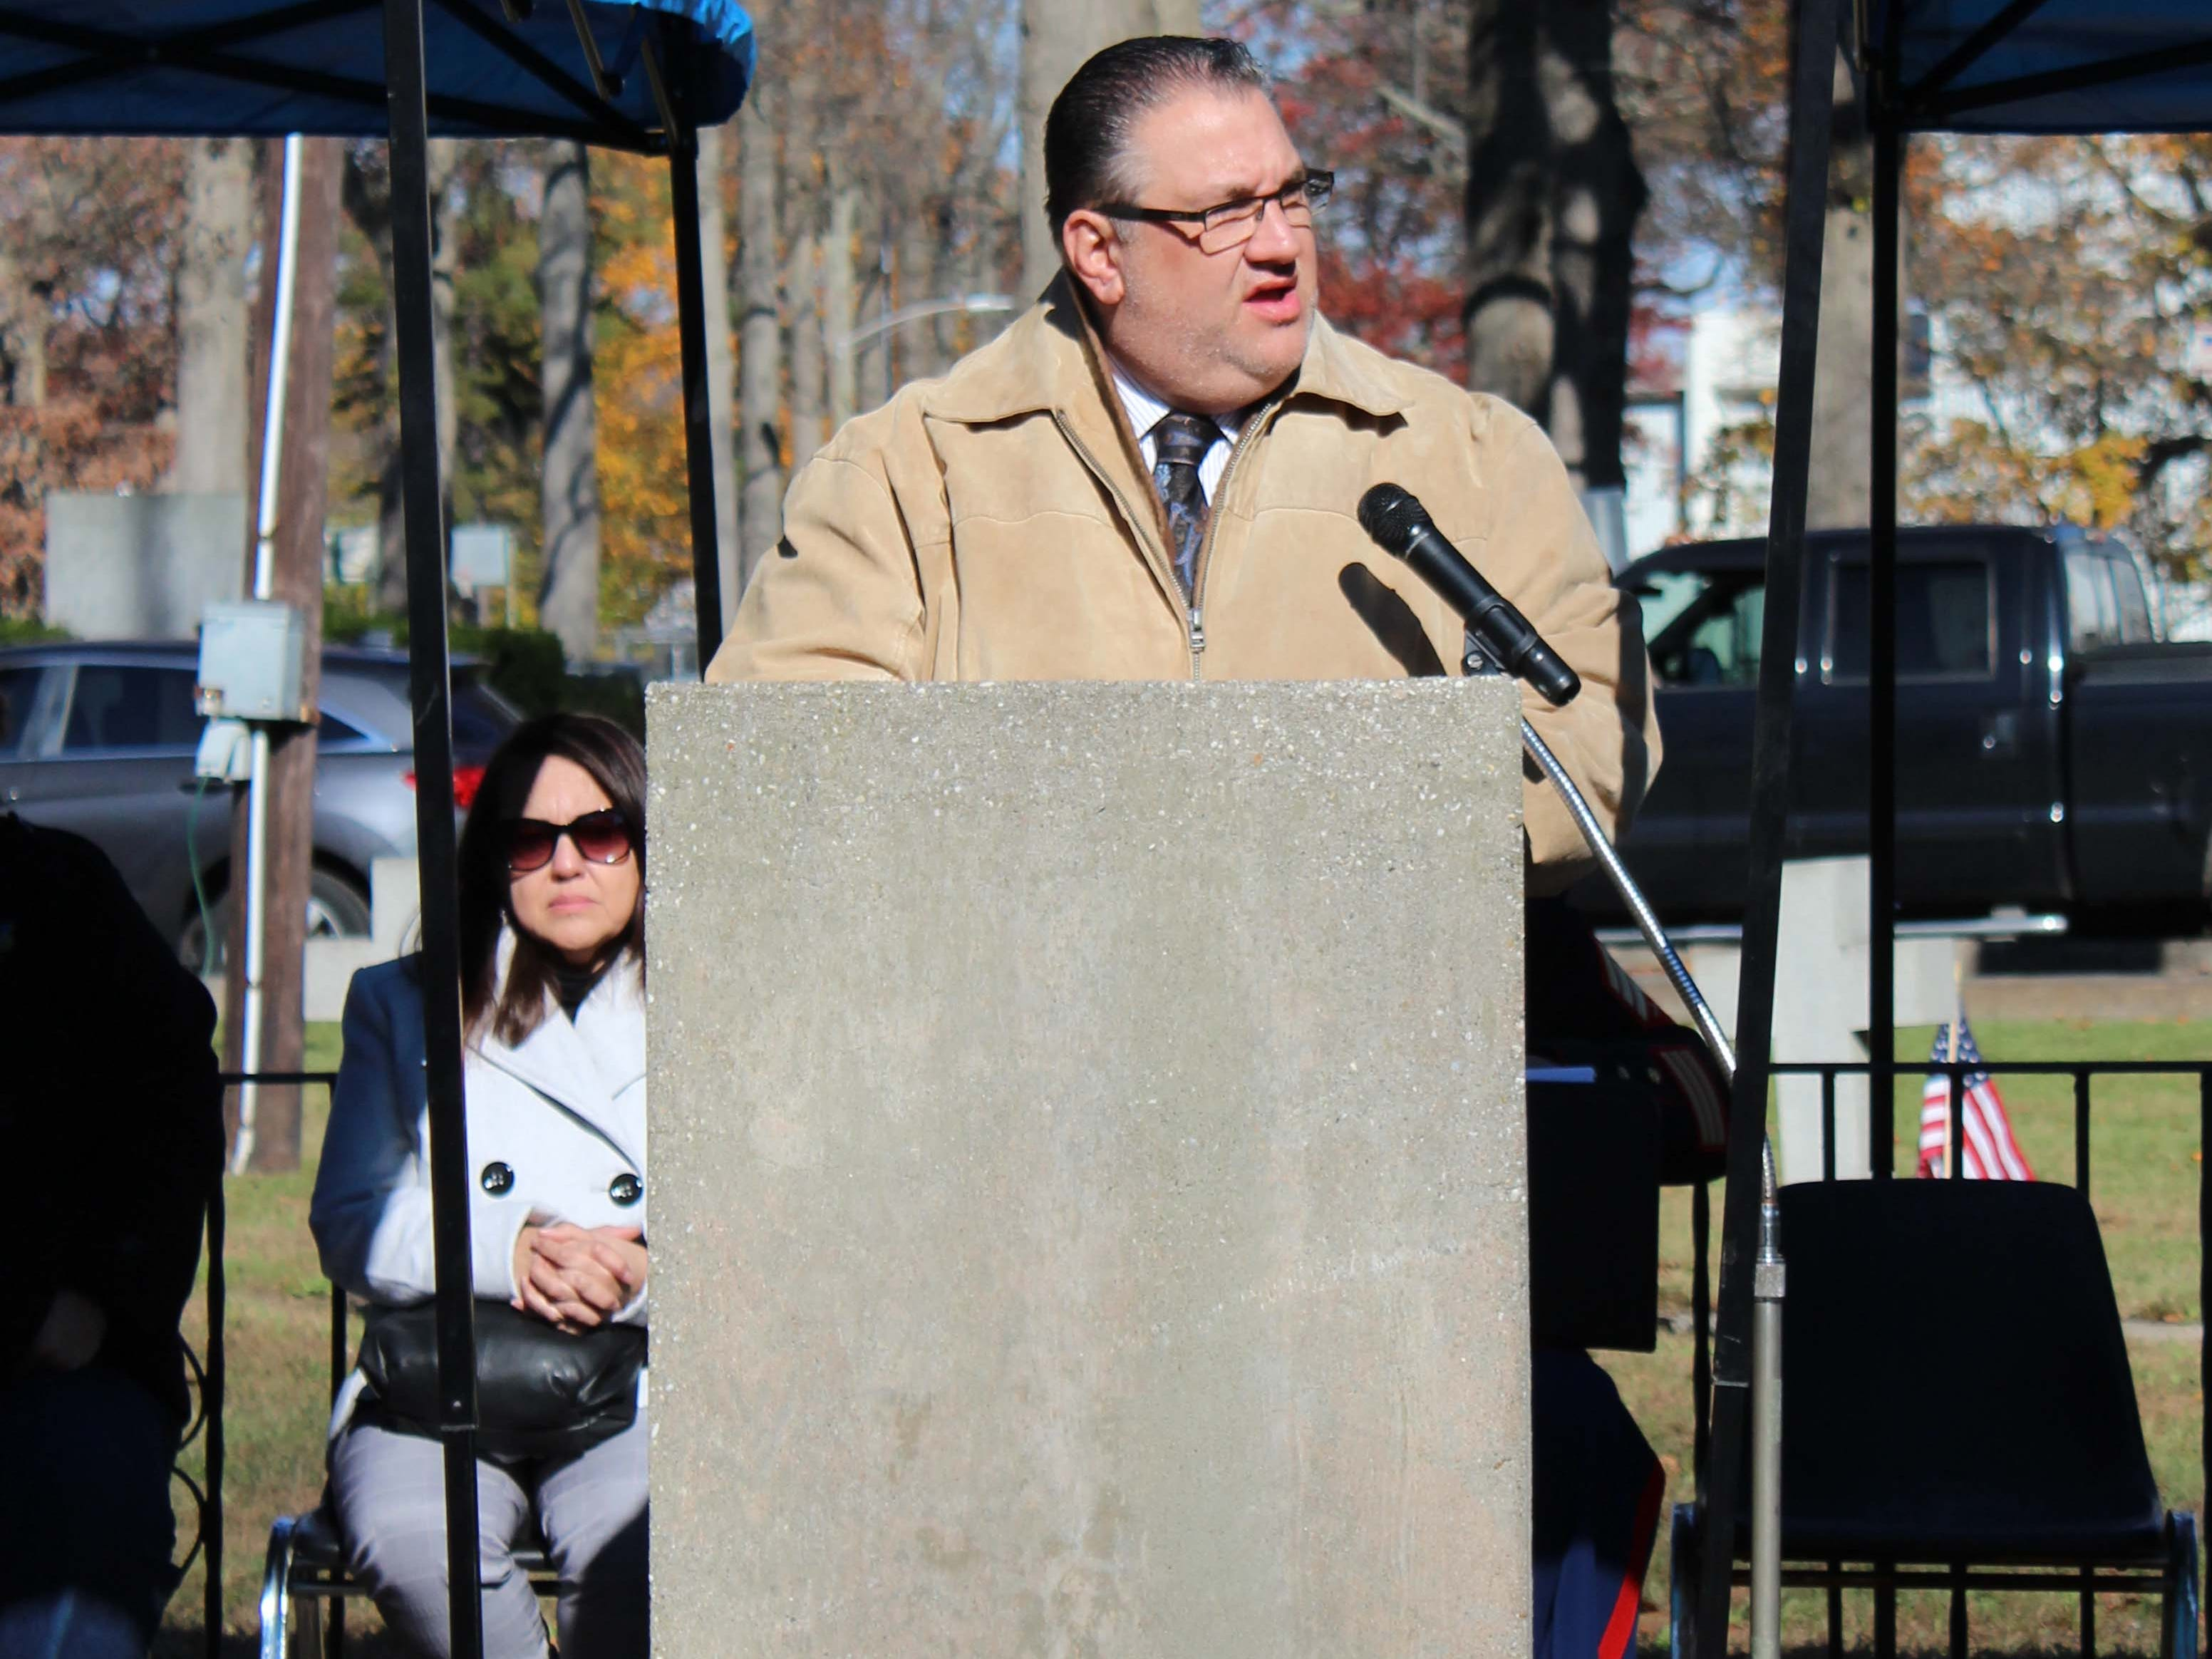 Vineland Mayor, Anthony Fanucci, gives a few remarks at the Veterans Day ceremony at Landis Park on Sunday.